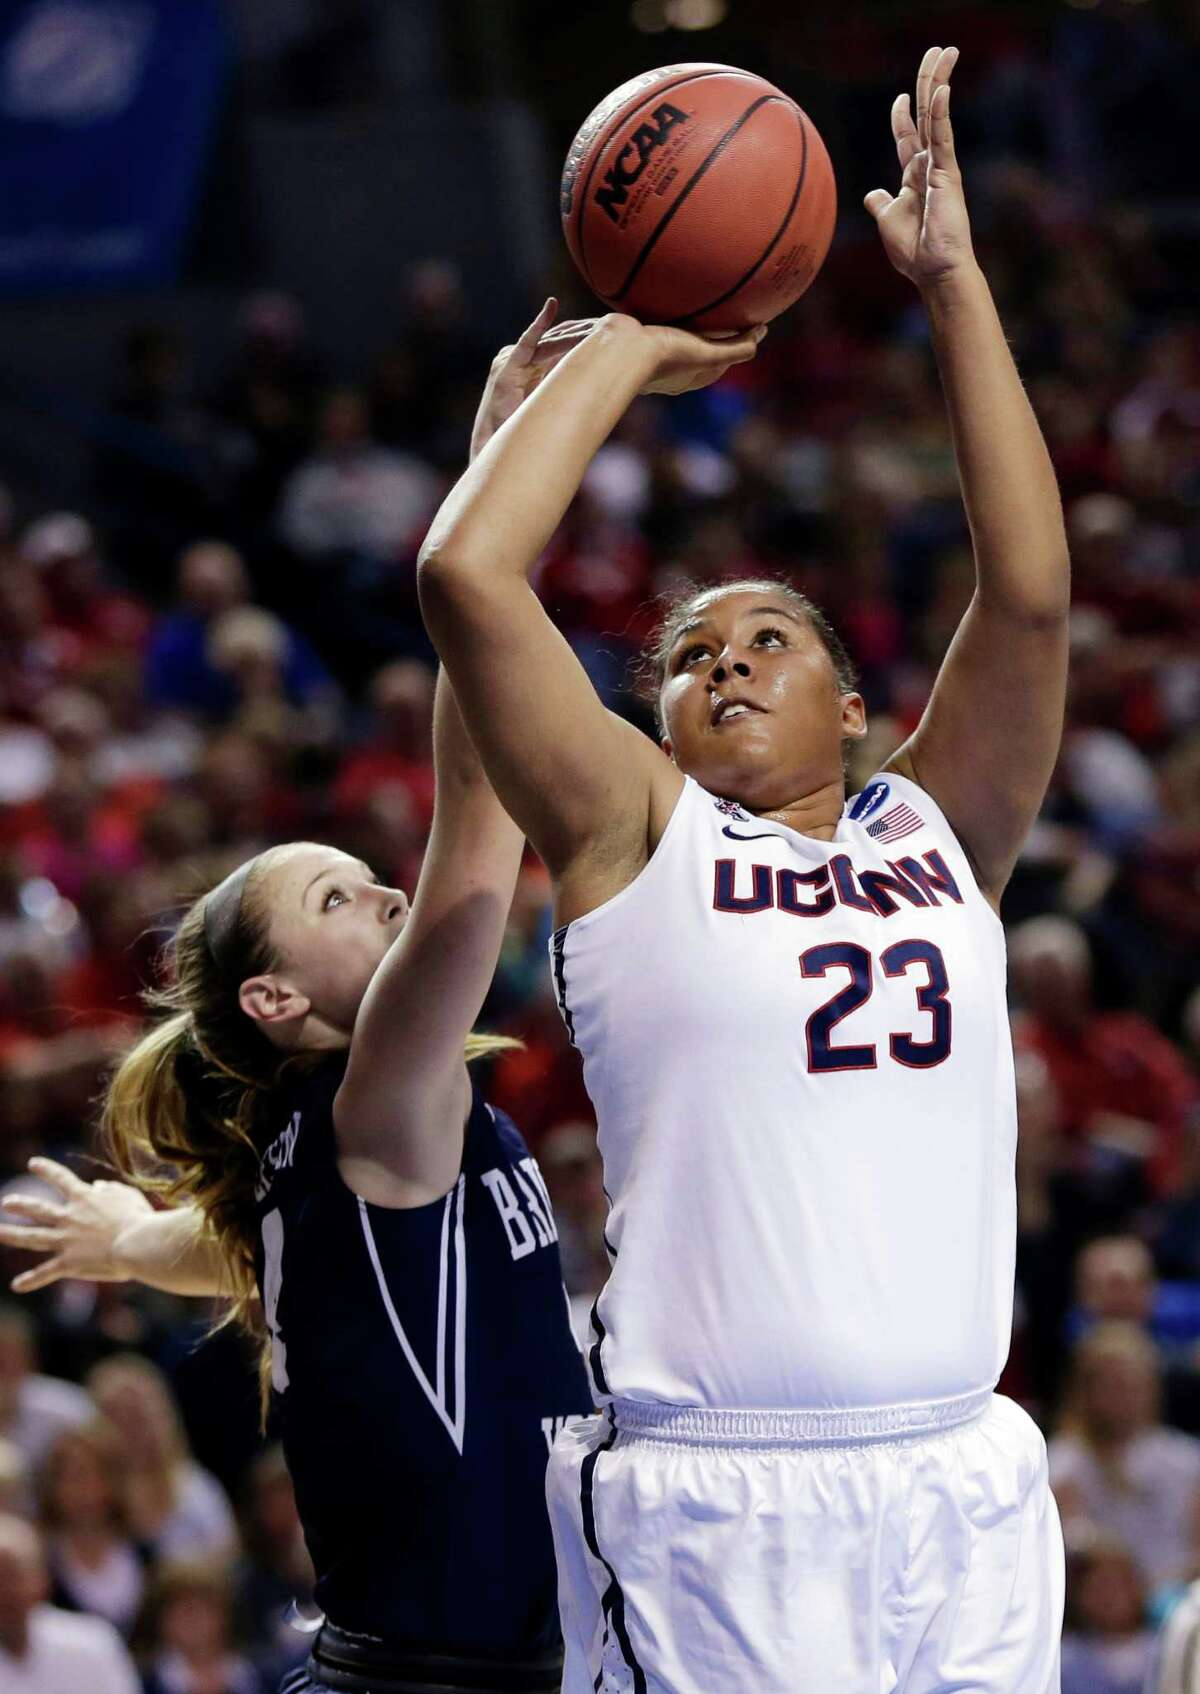 Connecticut's Kaleena Mosqueda-Lewis (23) shoots past BYU's Kim Beeston (4) during the first half of a regional semifinal in the NCAA college basketball tournament in Lincoln, Neb., Saturday, March 29, 2014. (AP Photo/Nati Harnik) ORG XMIT: NENH105